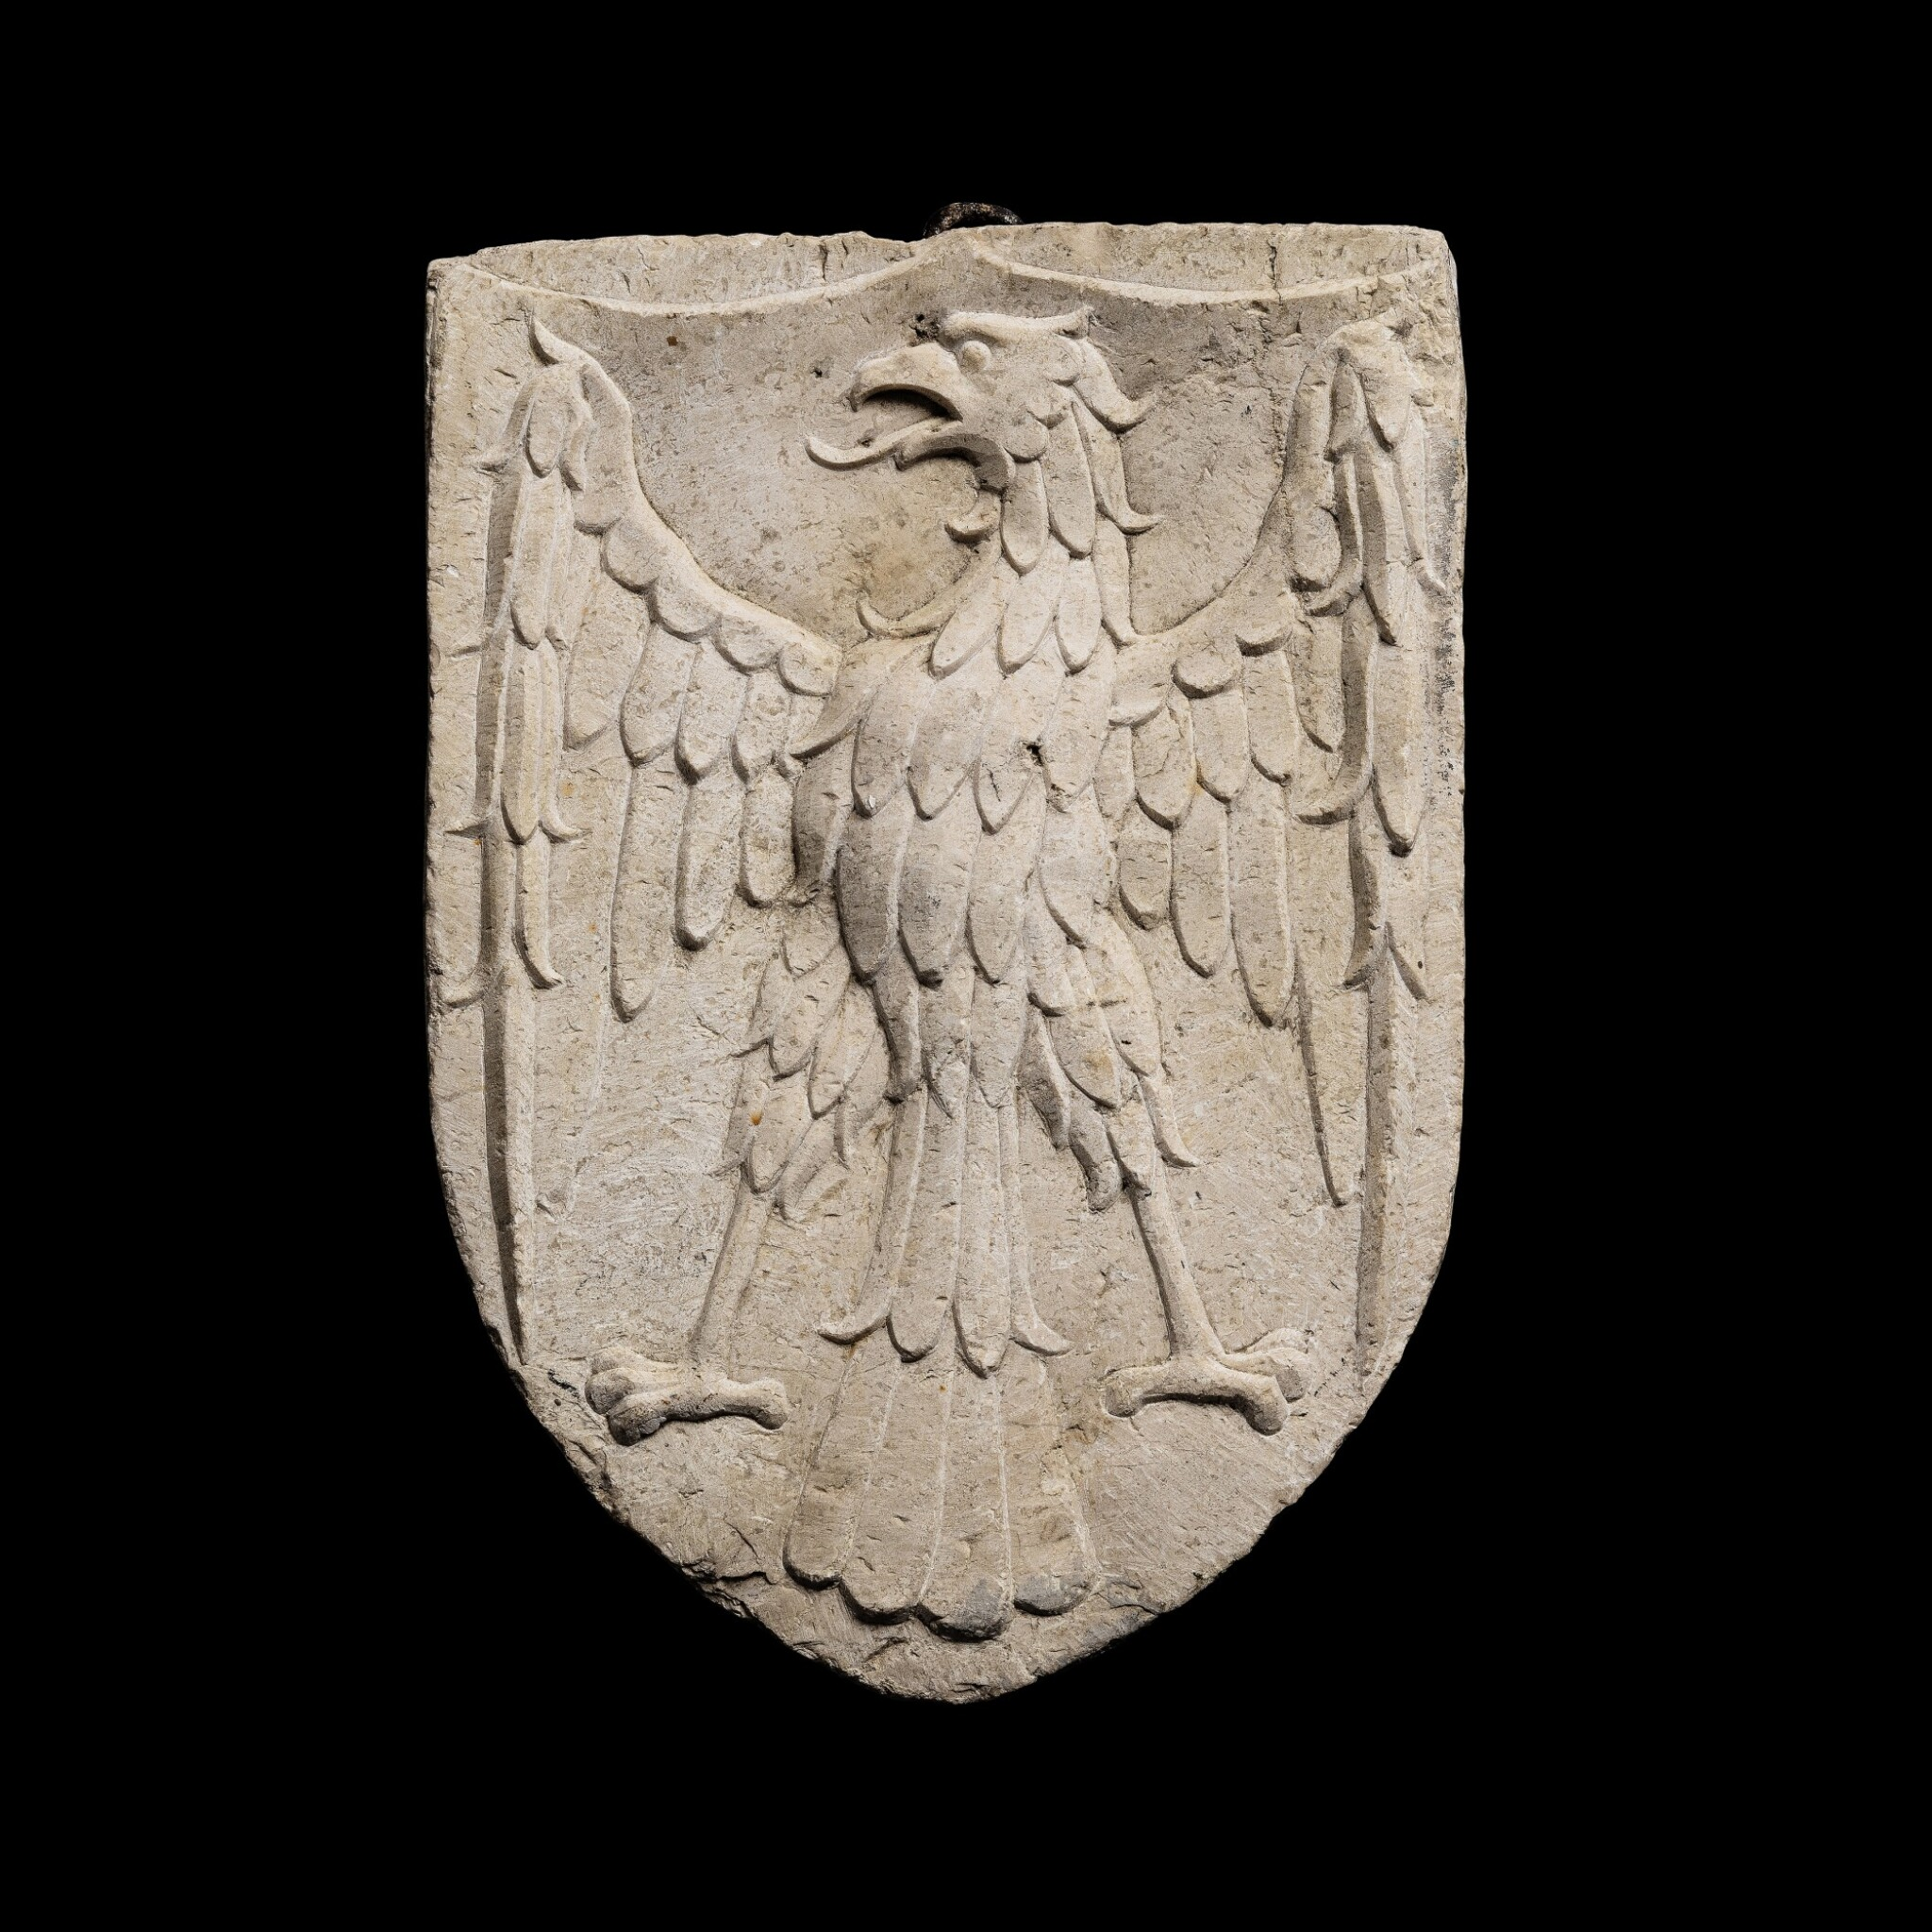 View 1 of Lot 143. Italian, Venice, in 15th century style | Escutcheon with an Eagle.